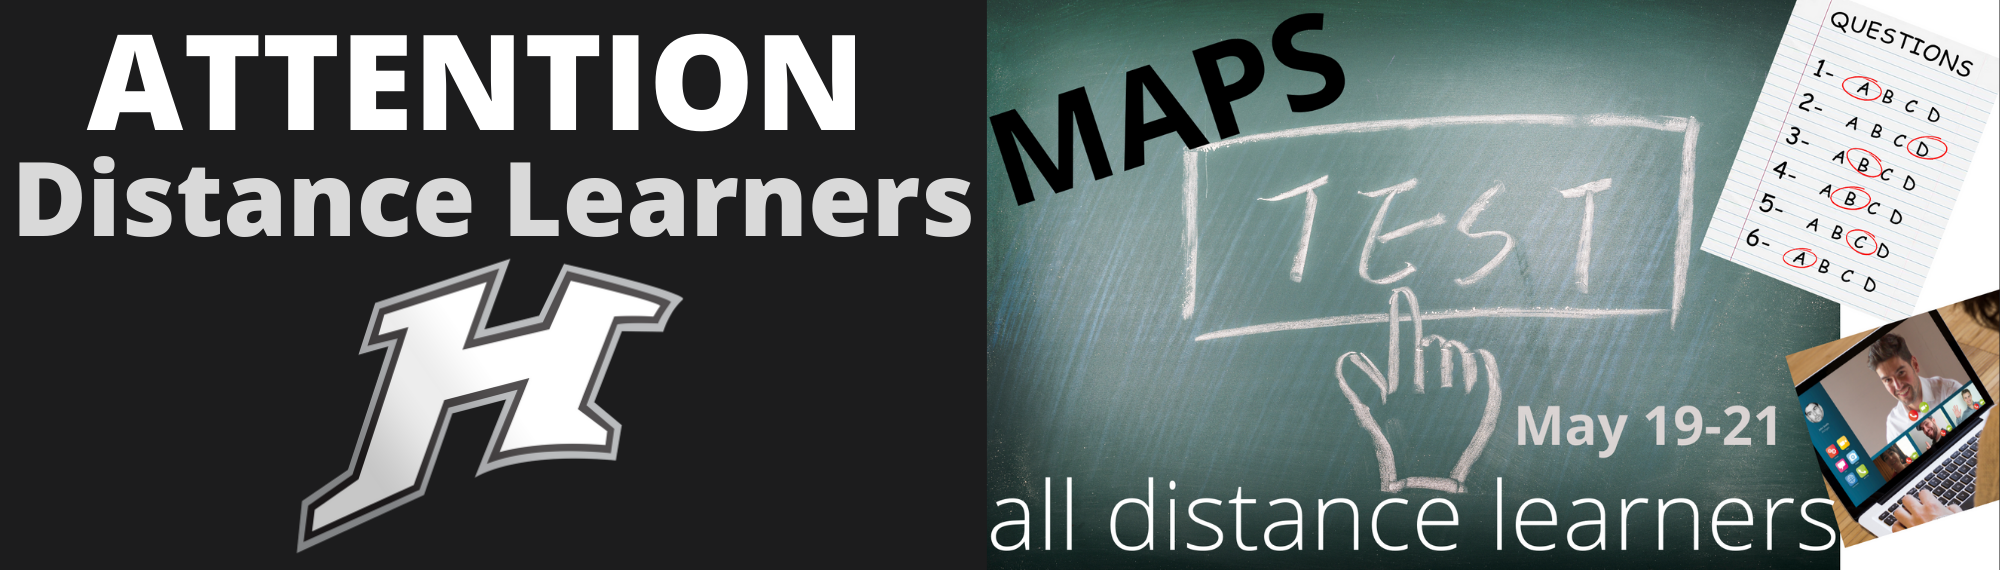 Distance Learners MAPS info